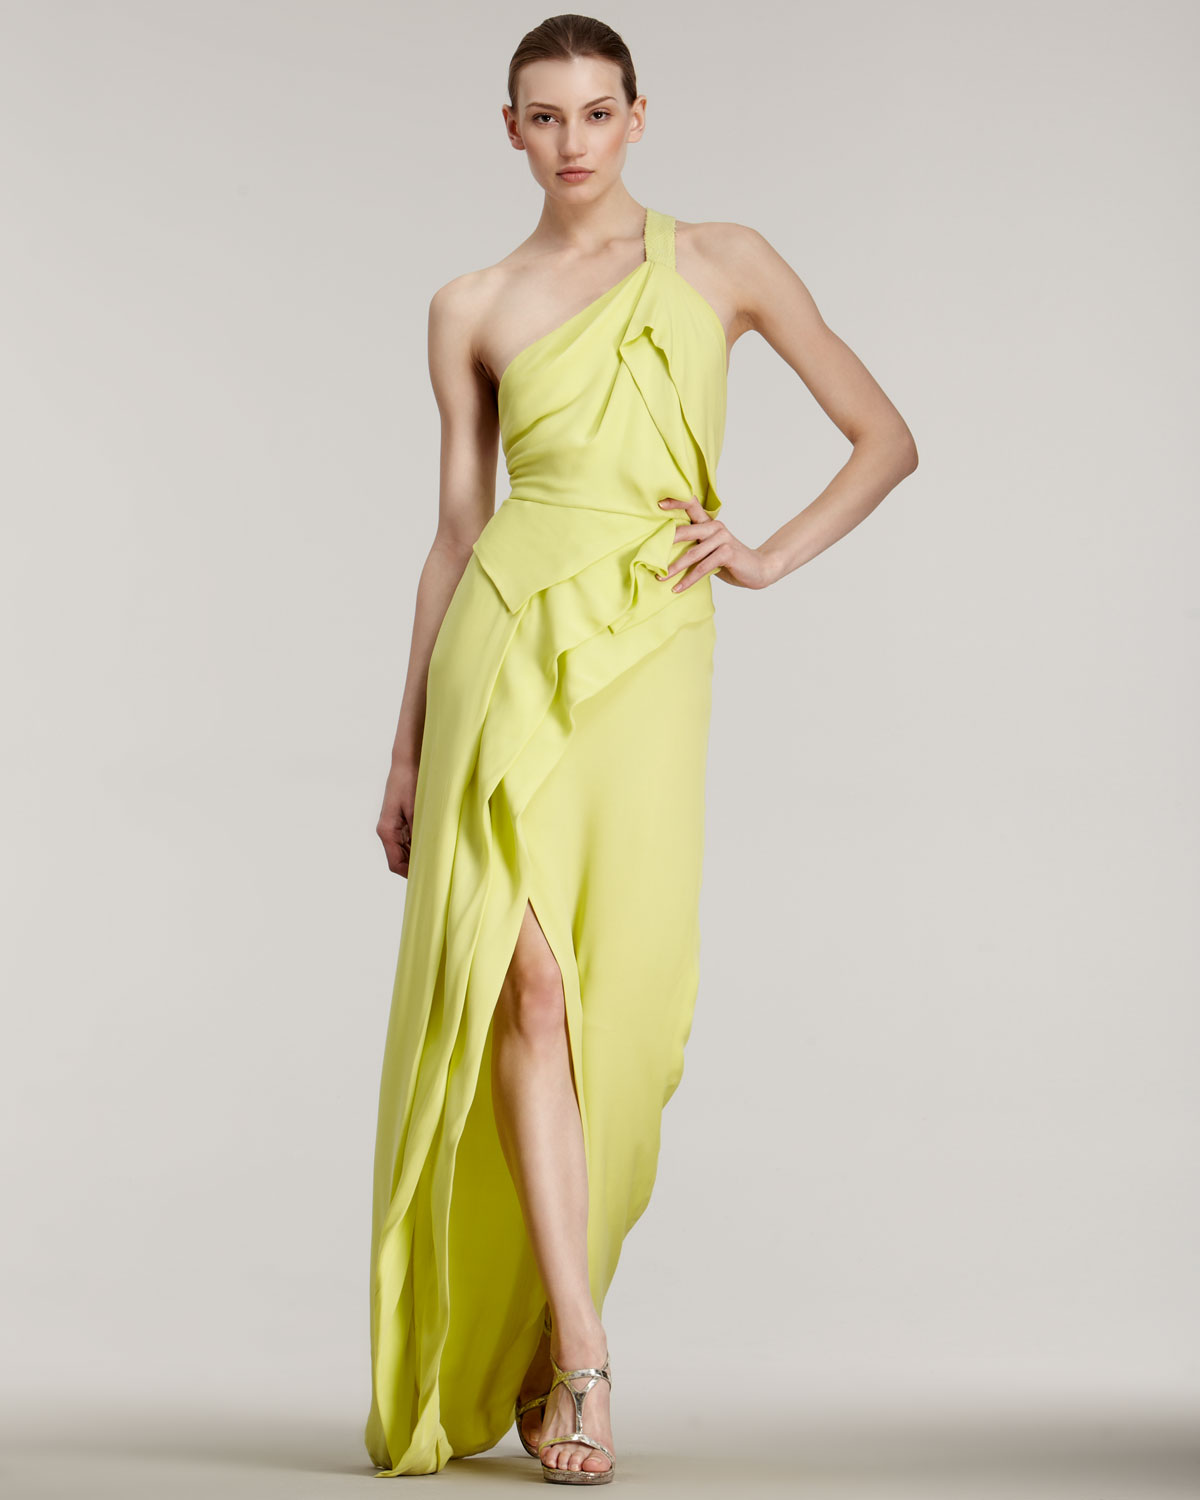 Lyst - J. Mendel One-shoulder Gown in Yellow